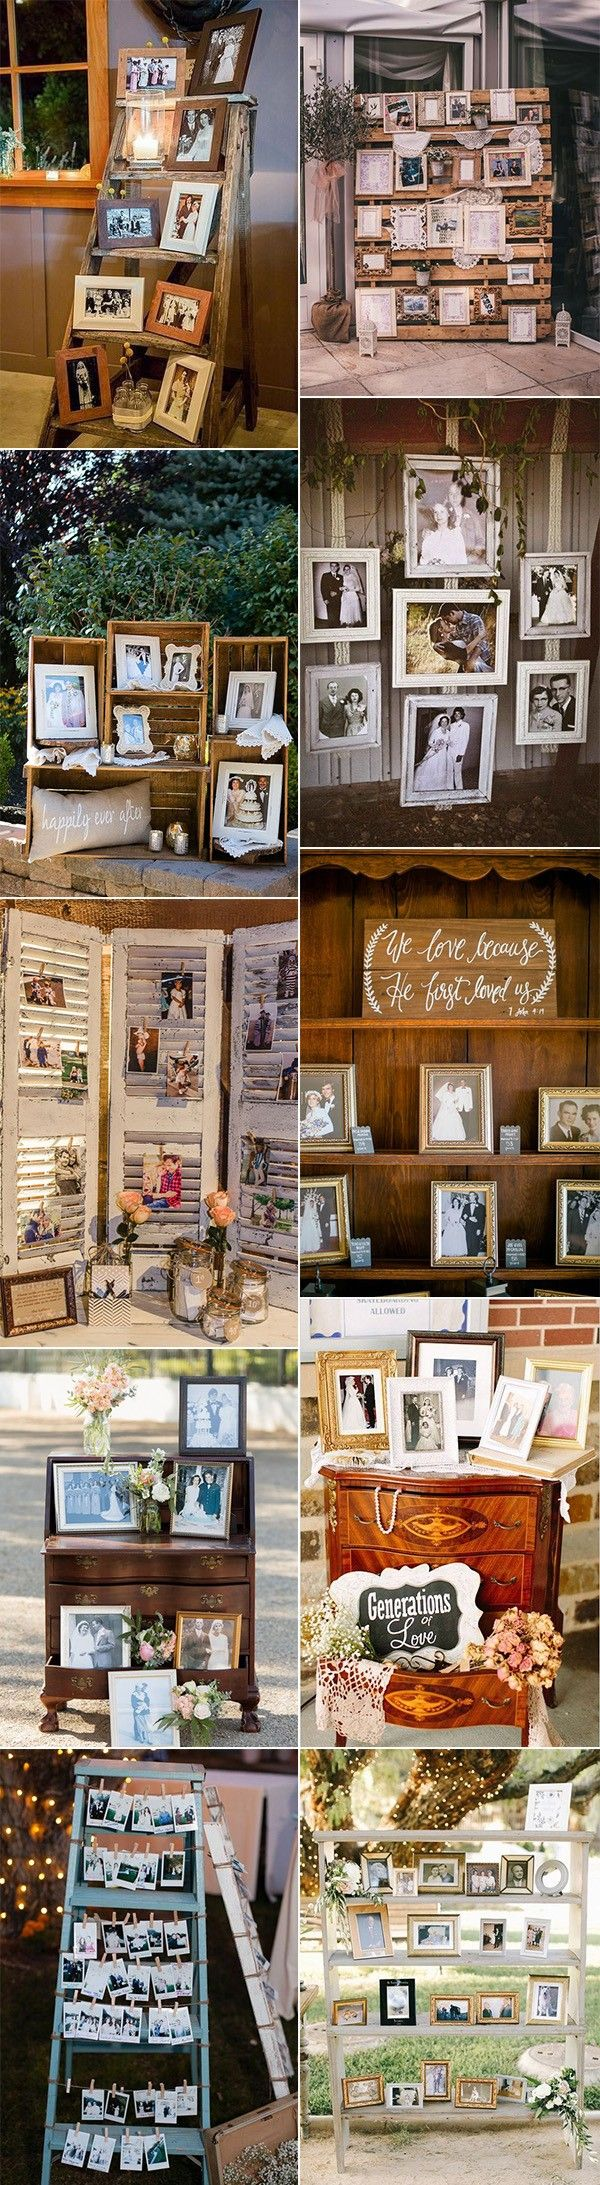 Wedding decorations at church november 2018  Adorable Vintage Wedding Ideas for  Trends  Vintage wedding